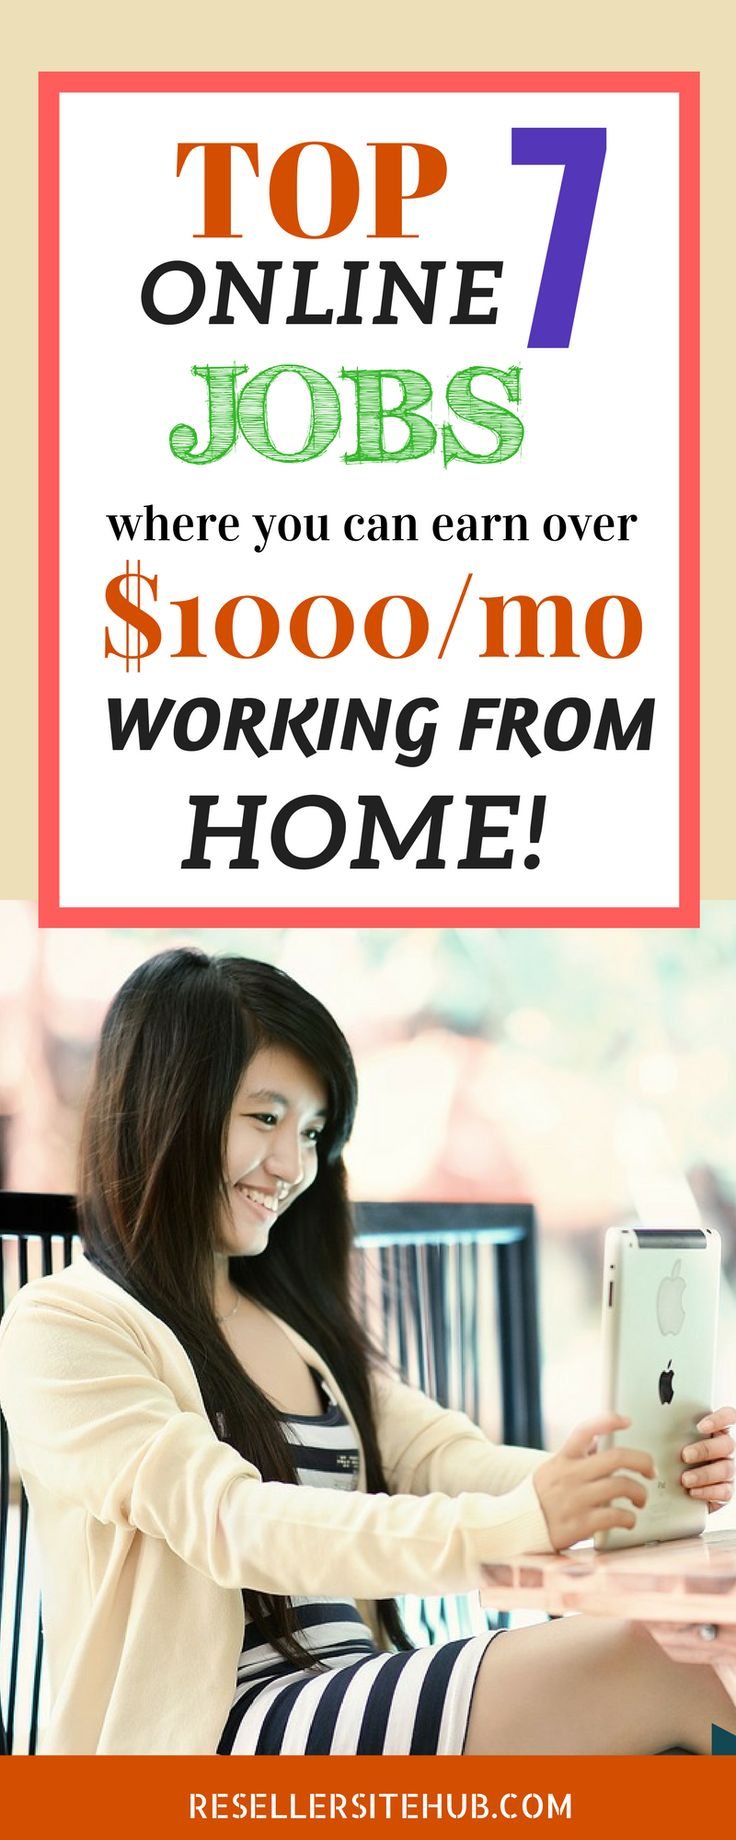 If you're in the hunt for legitimate online jobs , here we have collected 7 online jobs that you can earn more then $100 a month from home, this is great opportunity for side hustle , or people that are looking for something one the side.Check it out !